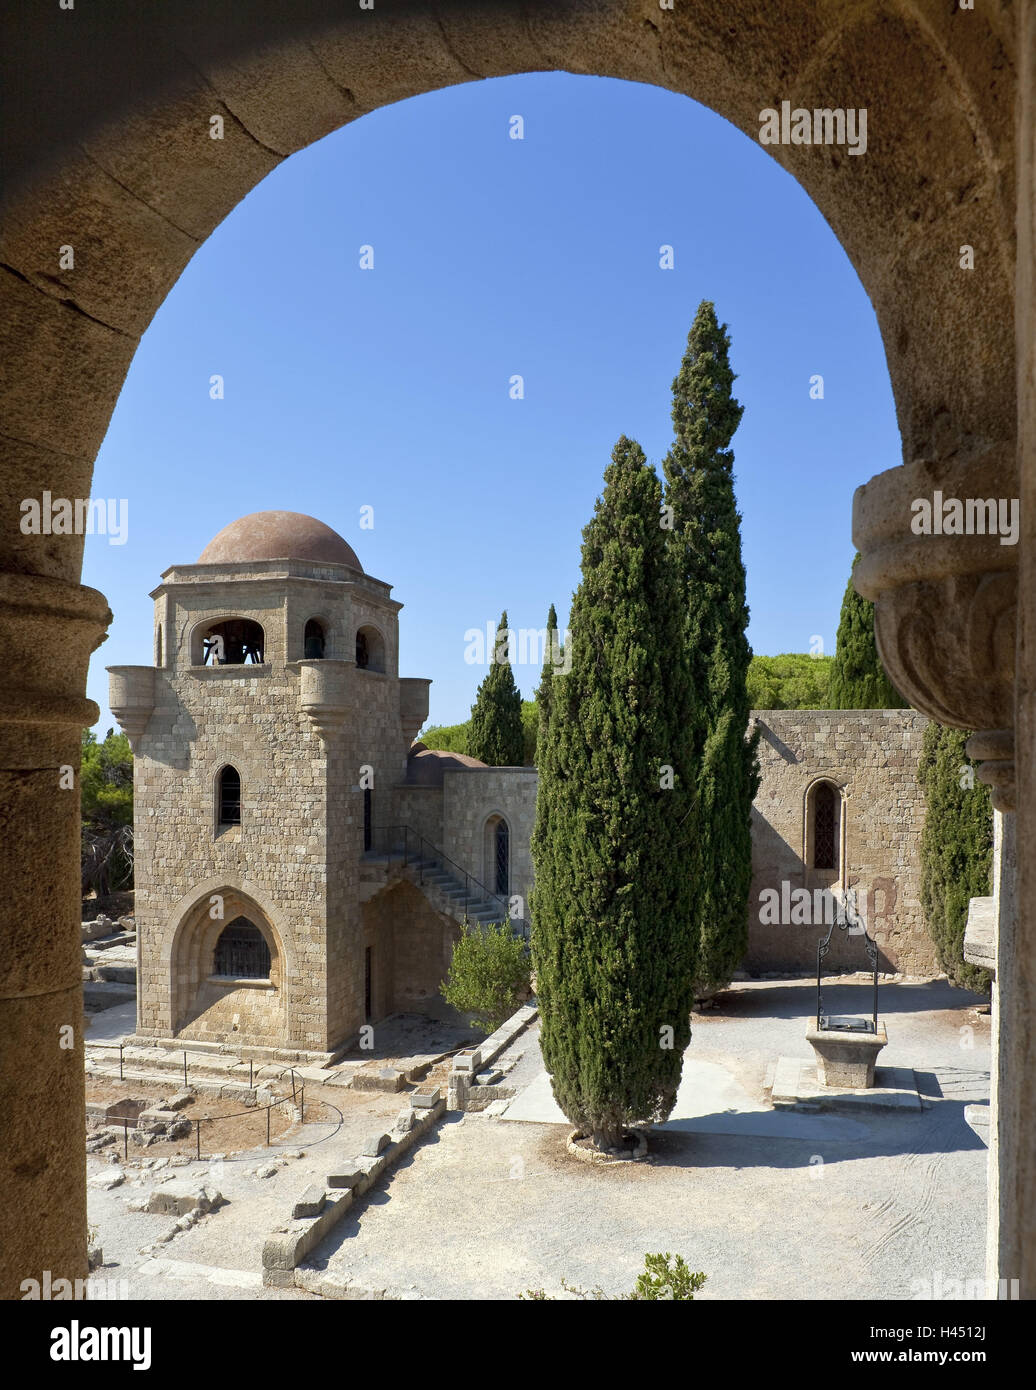 Europe, Southern, Europe, Greece, island Rhodes, Filerimos, former cloister, - Stock Image